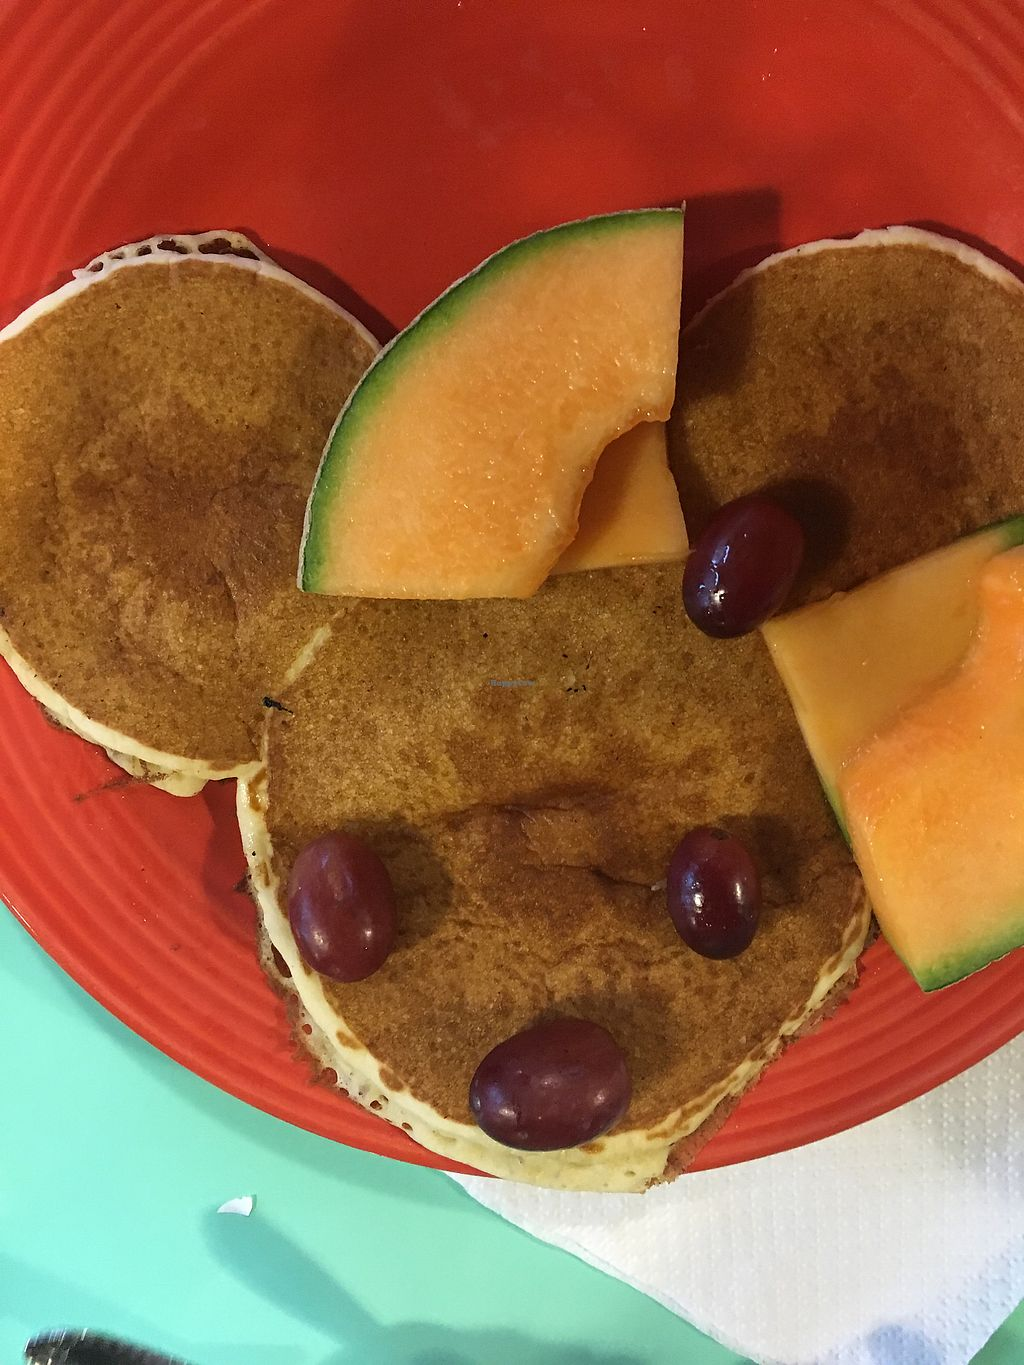 """Photo of Steady Eddy's Cafe at the Market  by <a href=""""/members/profile/EmmaMoesMommy"""">EmmaMoesMommy</a> <br/>Vegetarian mini mouse pancakes <br/> April 23, 2018  - <a href='/contact/abuse/image/27959/390149'>Report</a>"""